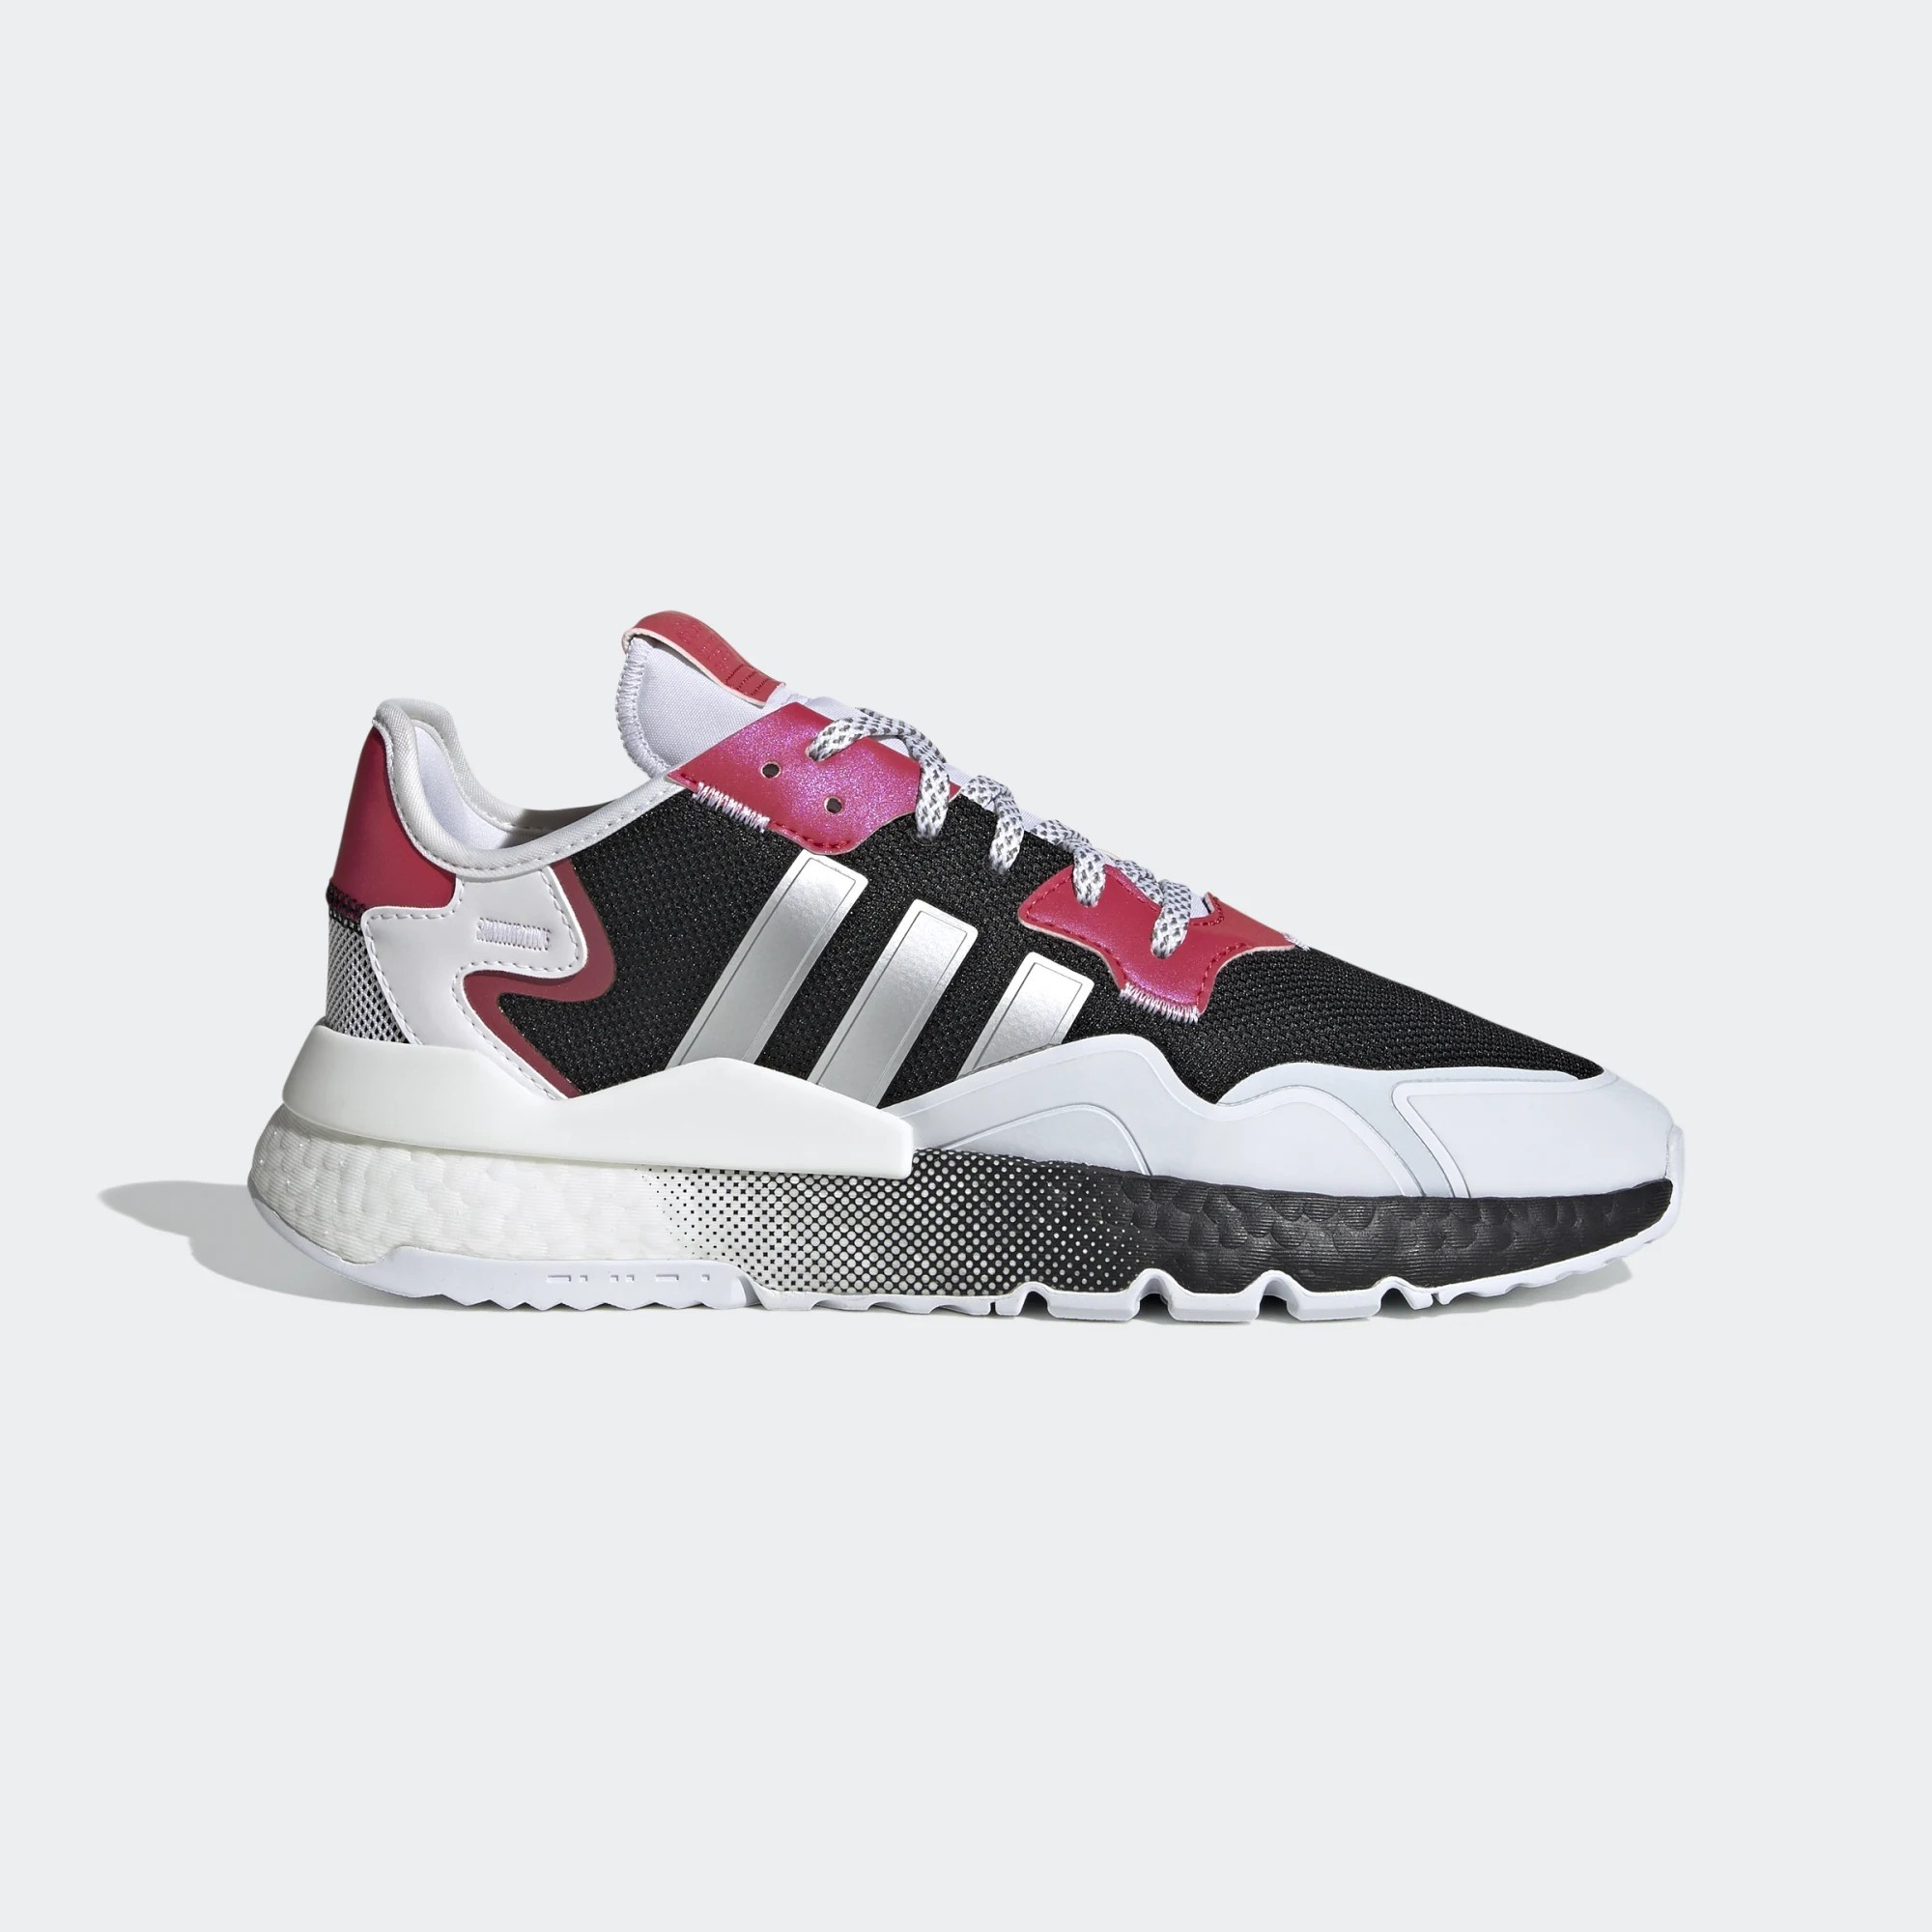 adidas Originals Nite Jogger BOOST Black Silver White Red EF5402